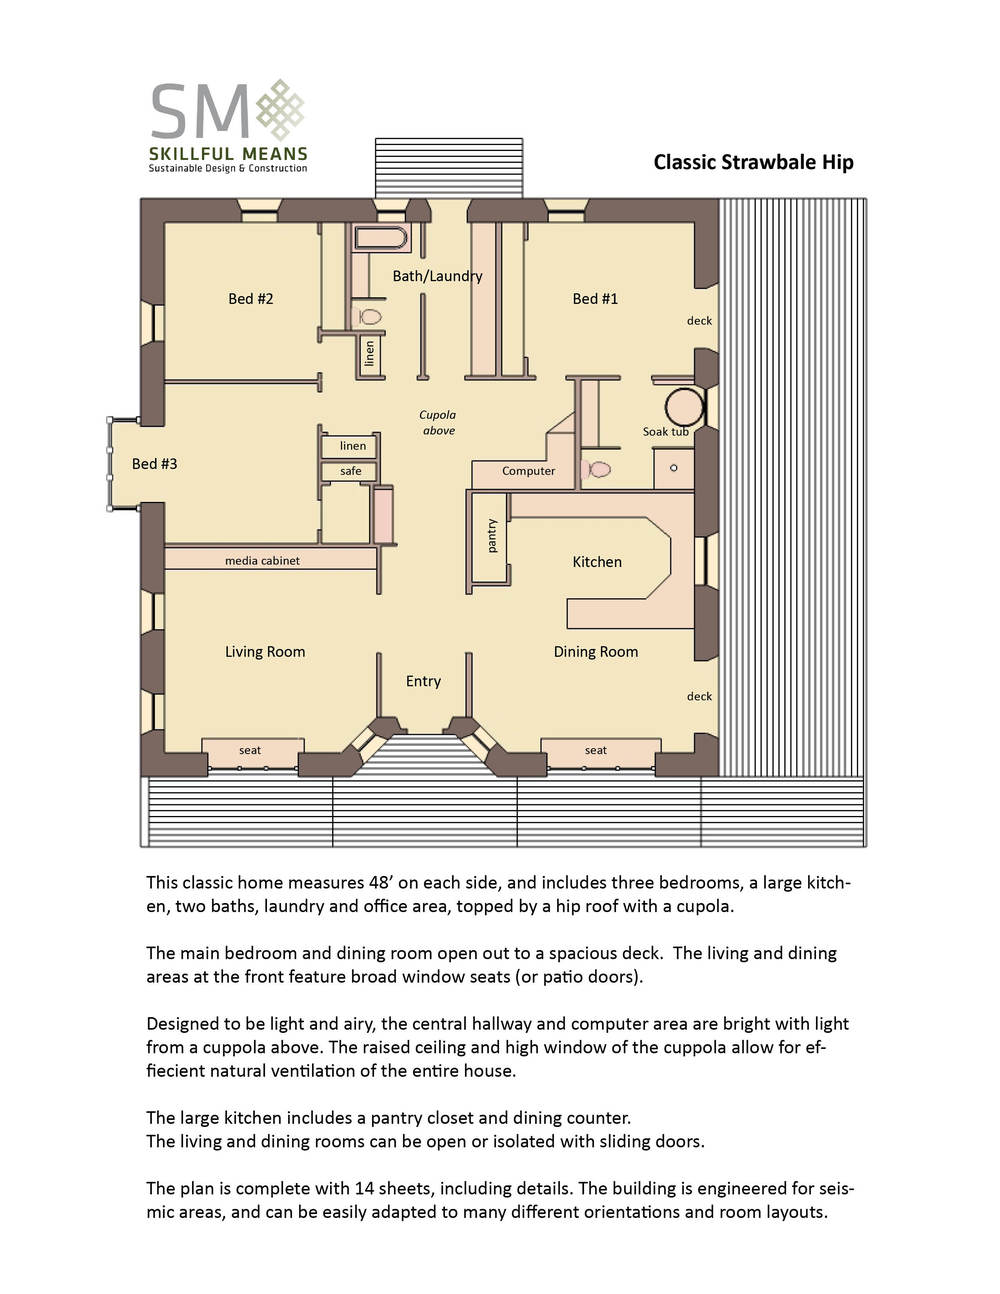 square house plans home design ideas house plans classic strawbale hip